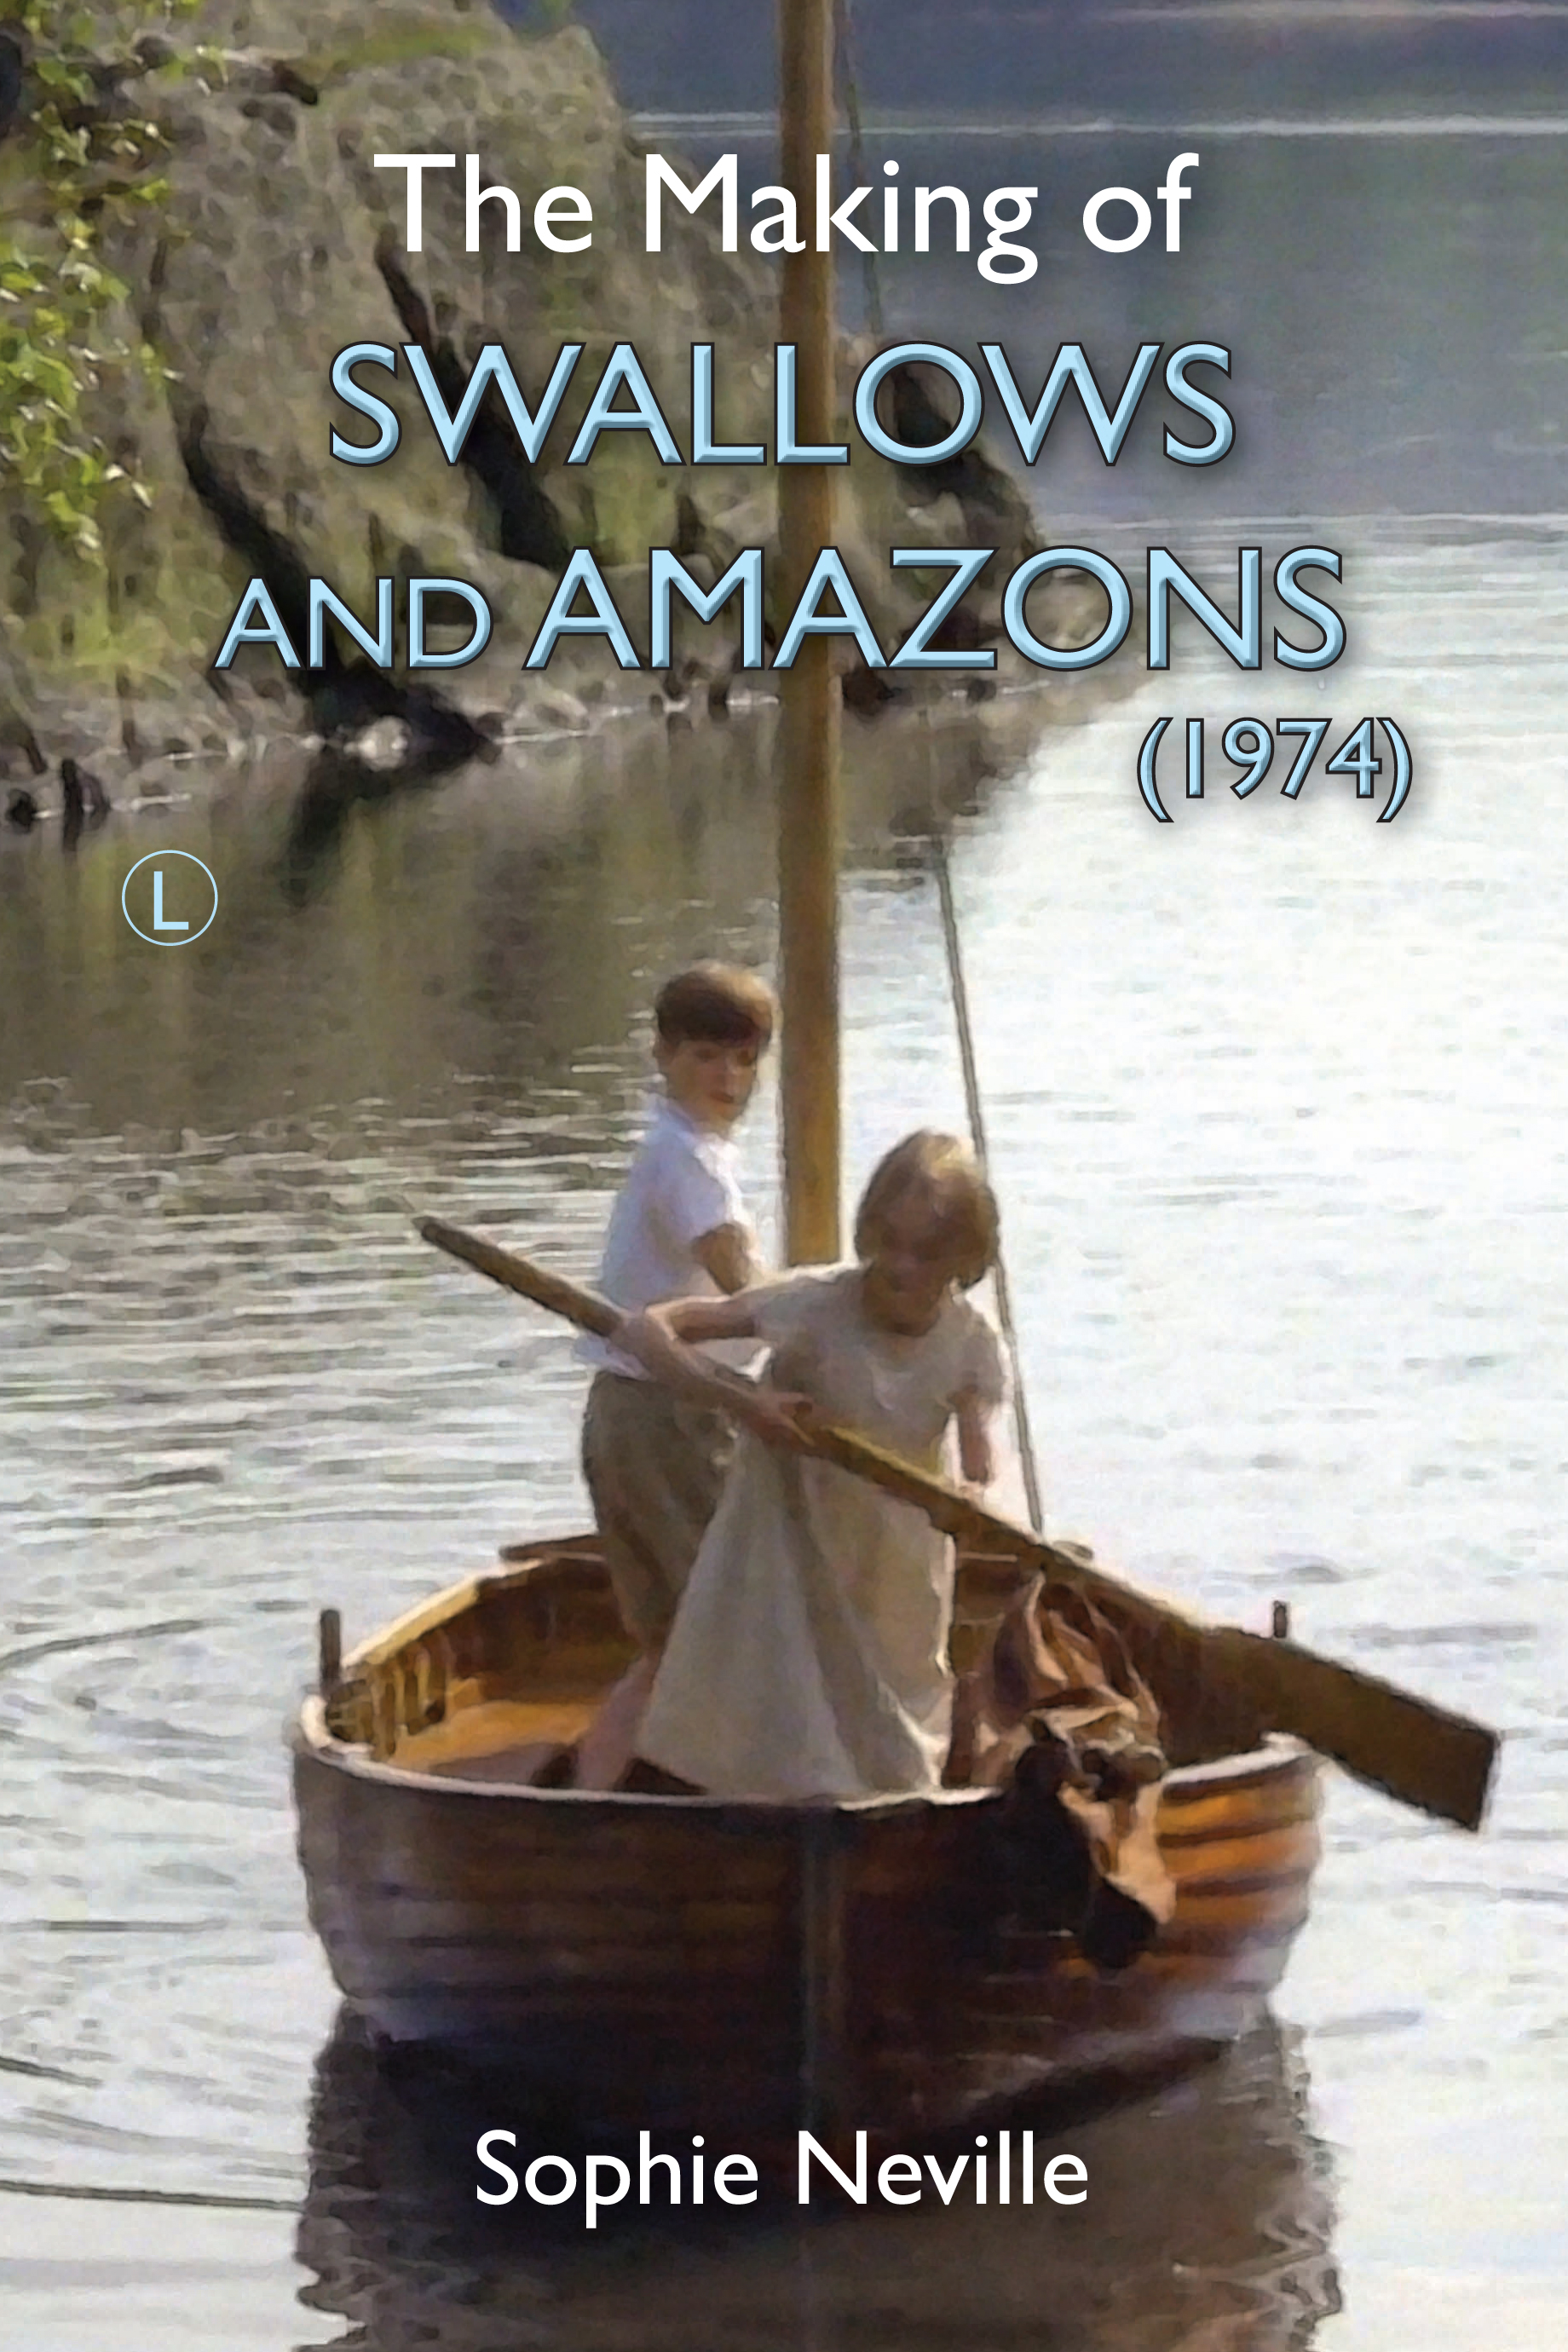 2nd edition of 'The Making of Swallows & Amazons'